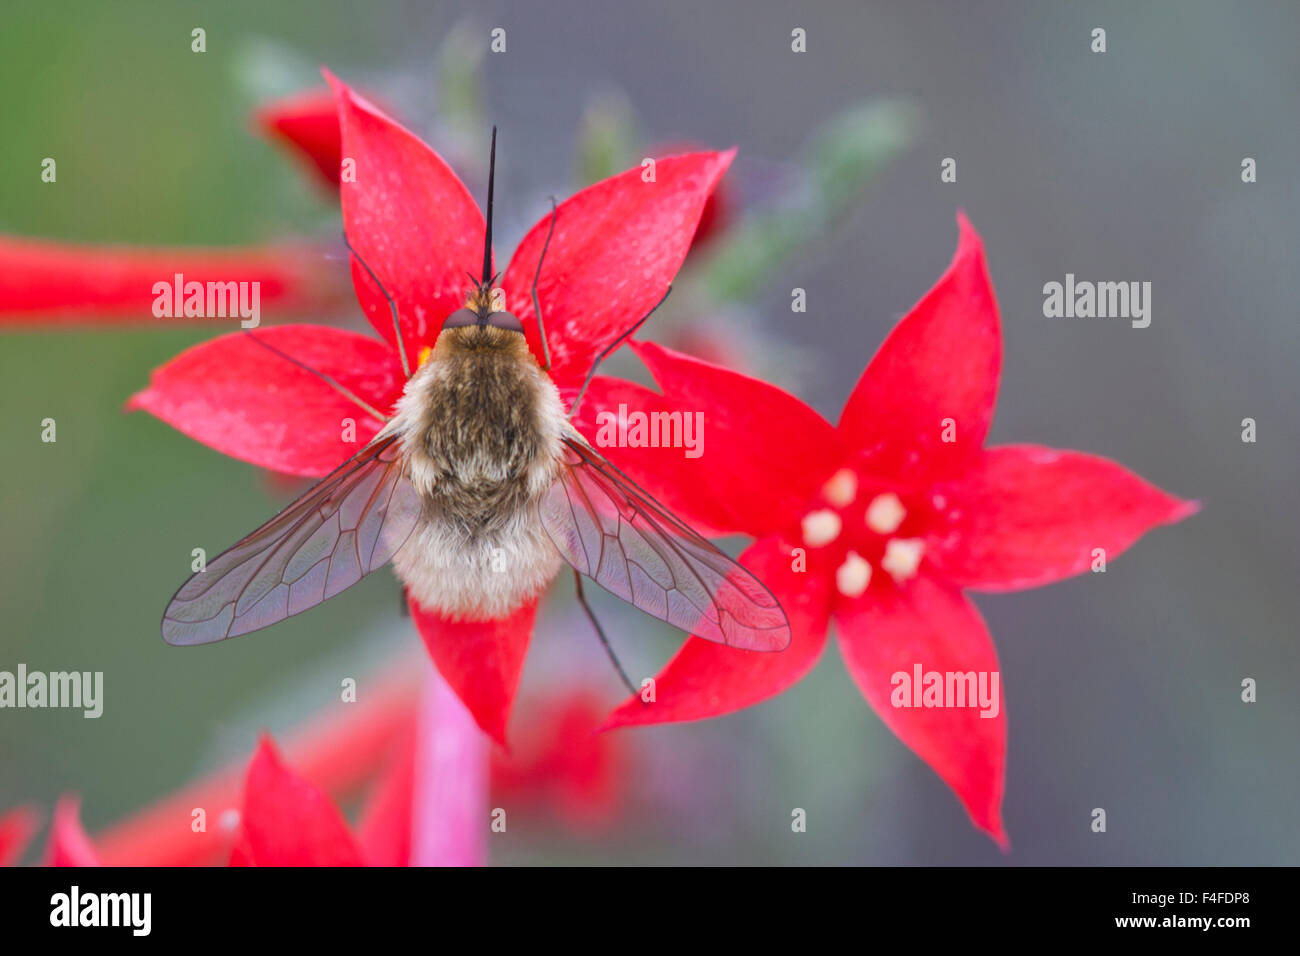 Wyoming, Sublette County, Bee Fly with proboscis showing on Scarlet Gilia flowers. - Stock Image